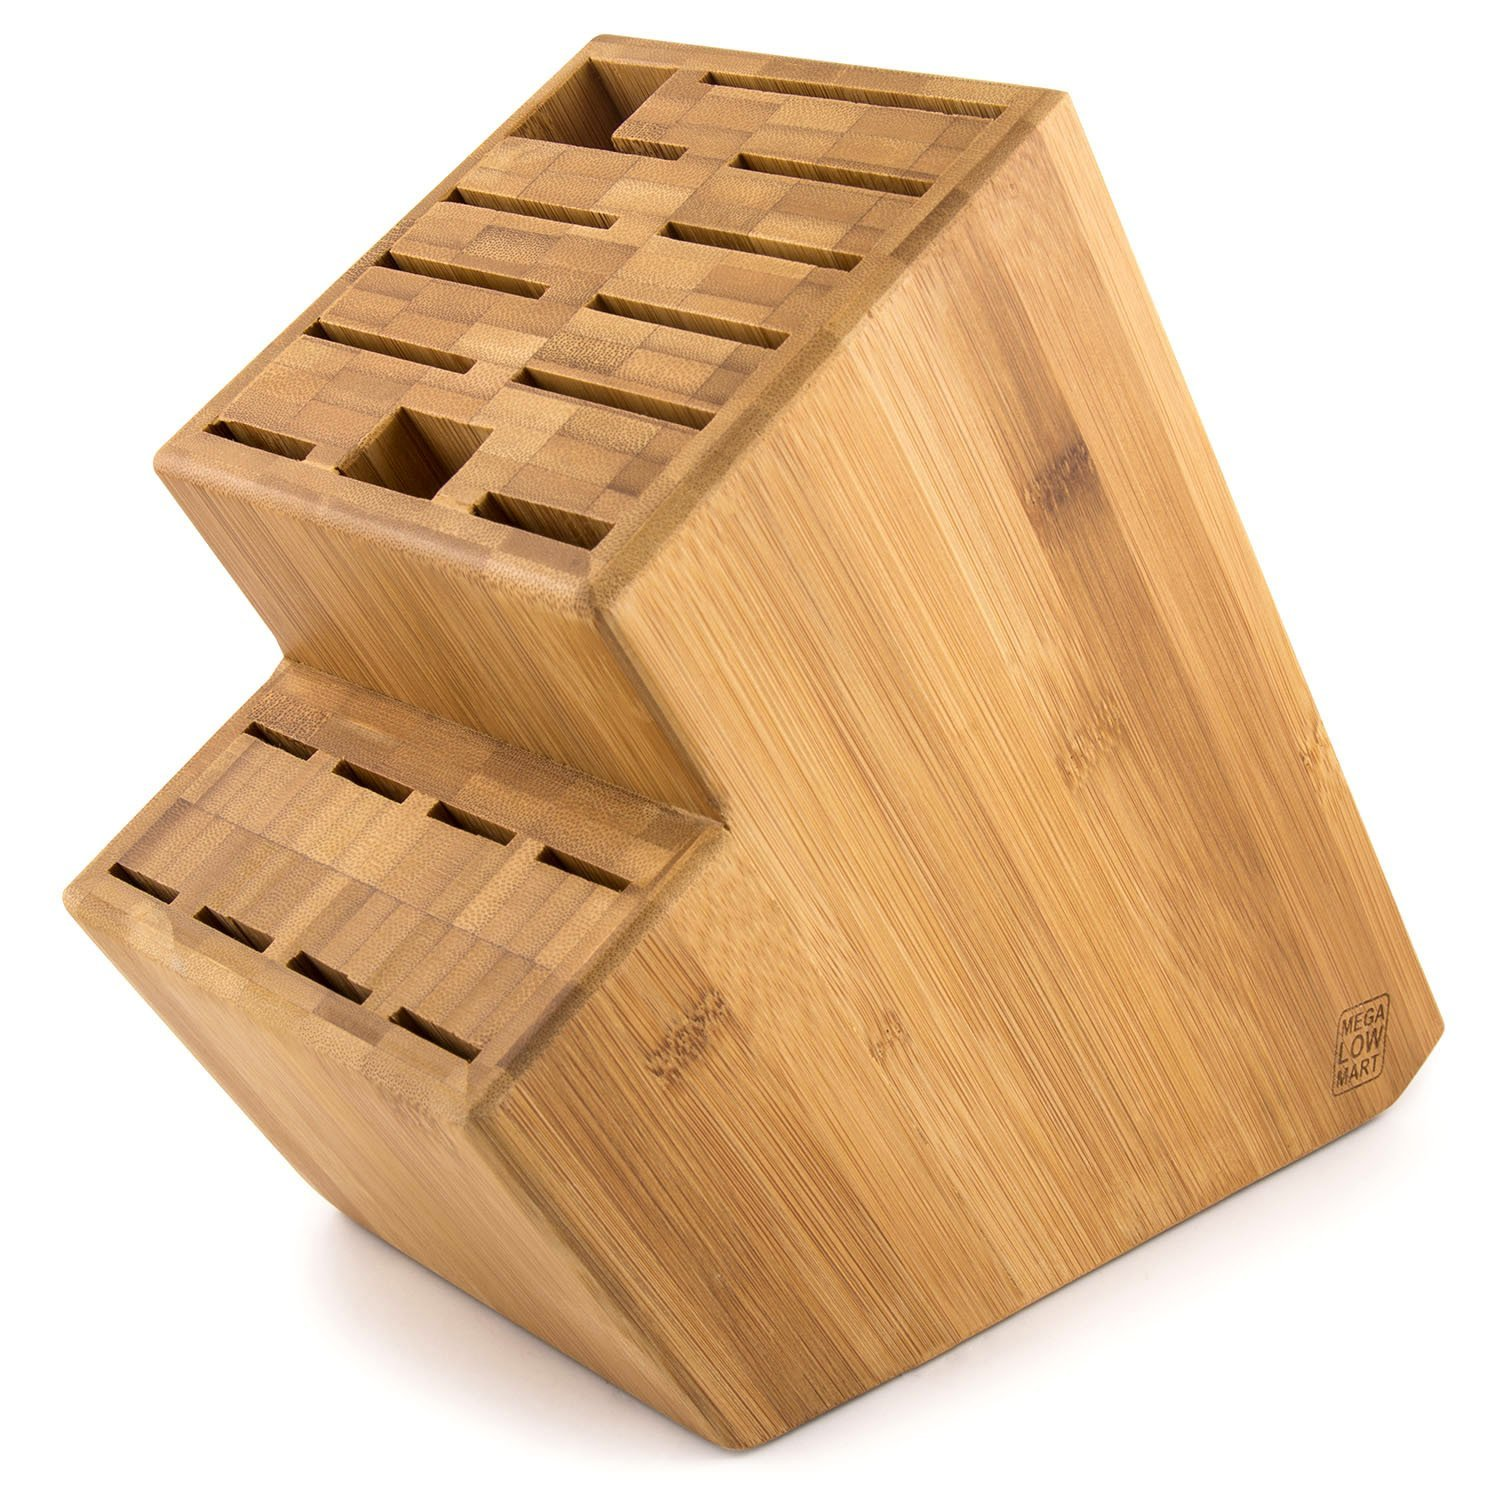 Megalowmart 18 Slot Bamboo Wood Kitchen Knife Block Stand